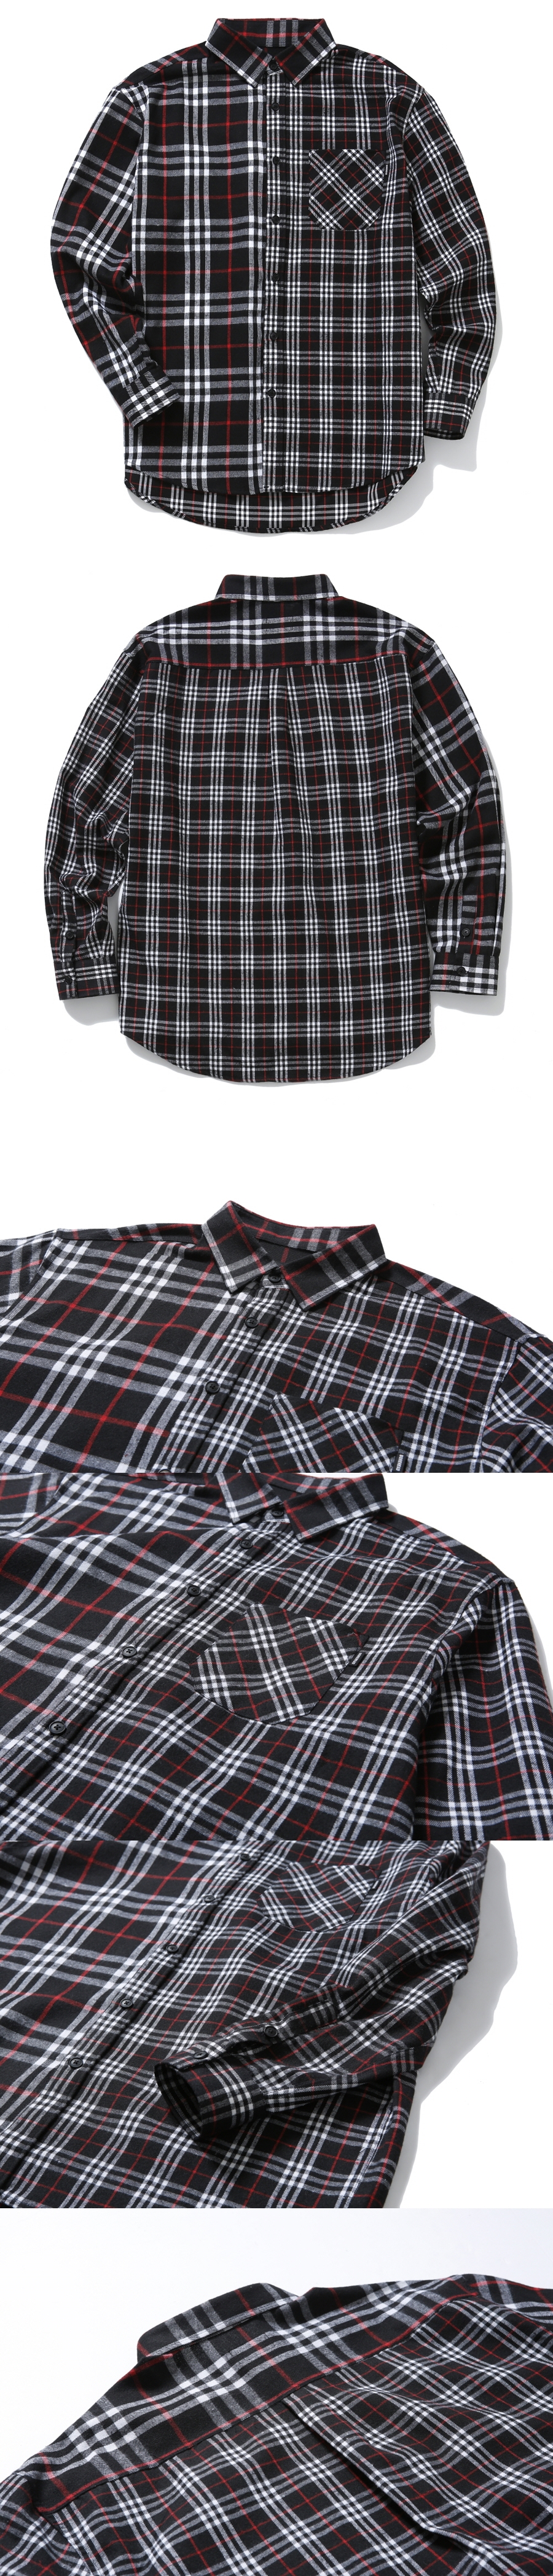 본헤드(BONEHEAD) 18FW MIXED CHECK SHIRT (BLACK)